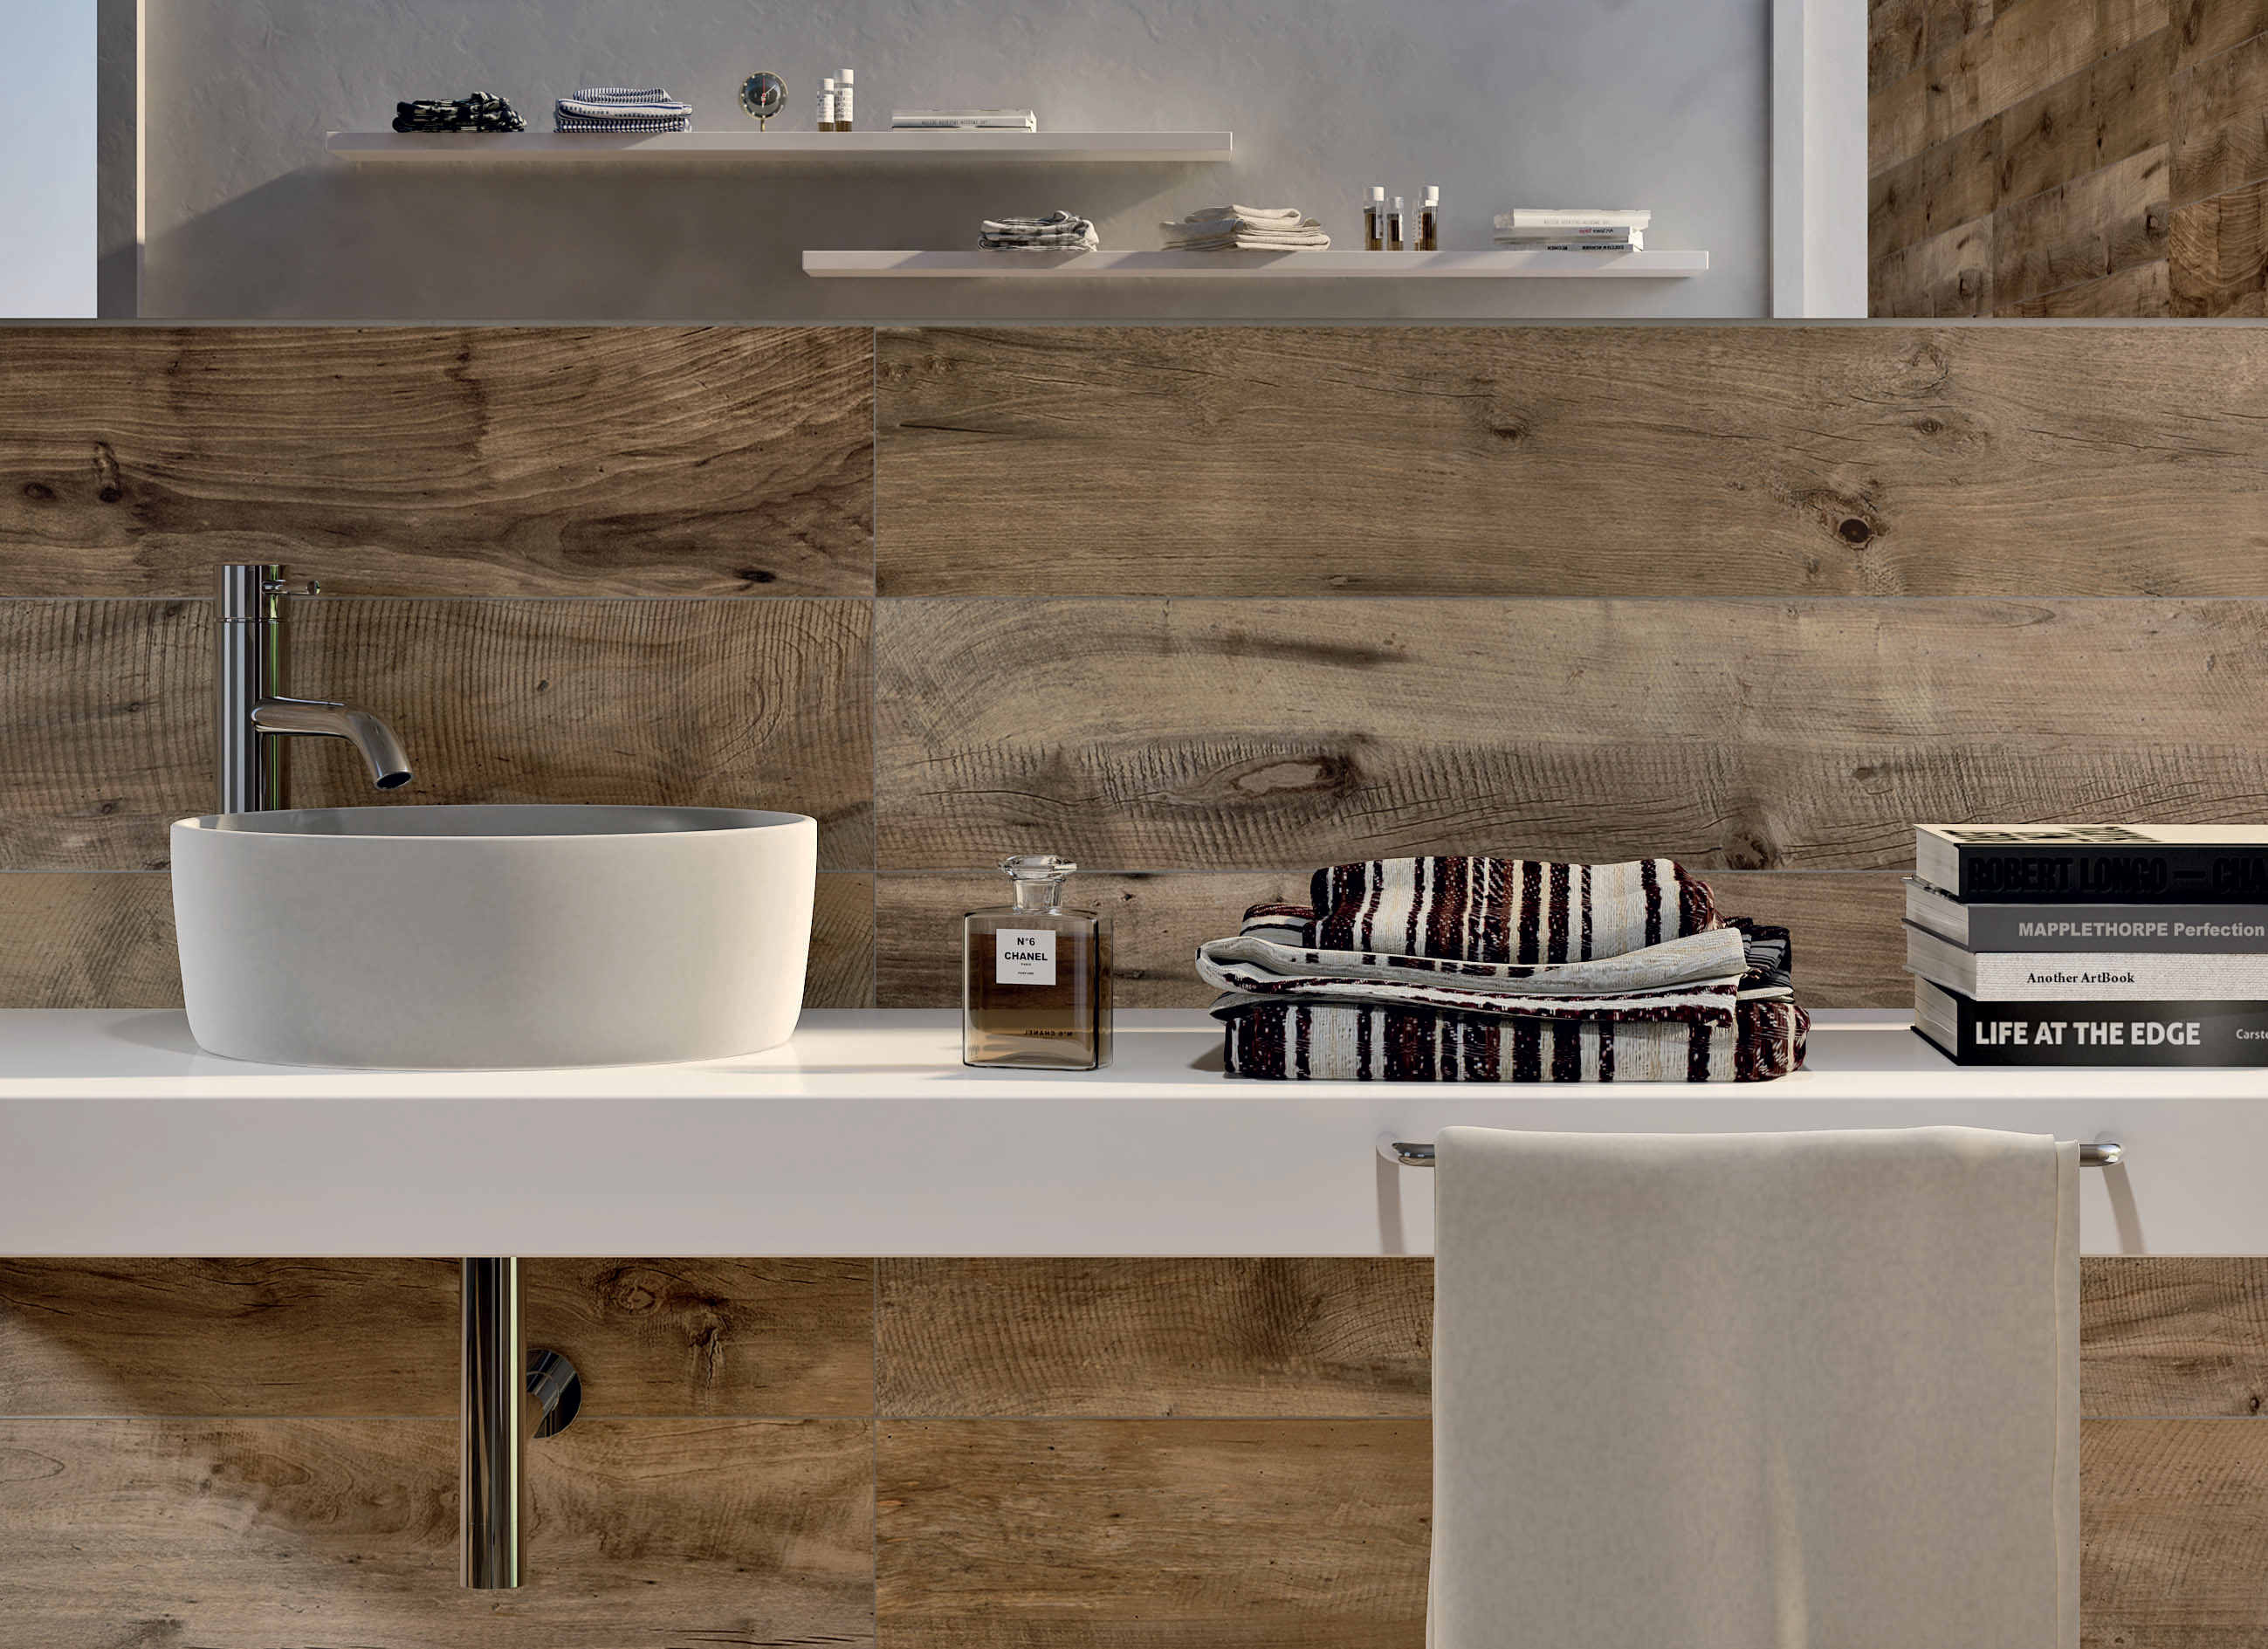 Flaviker - Dakota Wood-effect tile available from Real Stone & Tile (www.realstoneandtile.co.uk - 0161 485 1373)